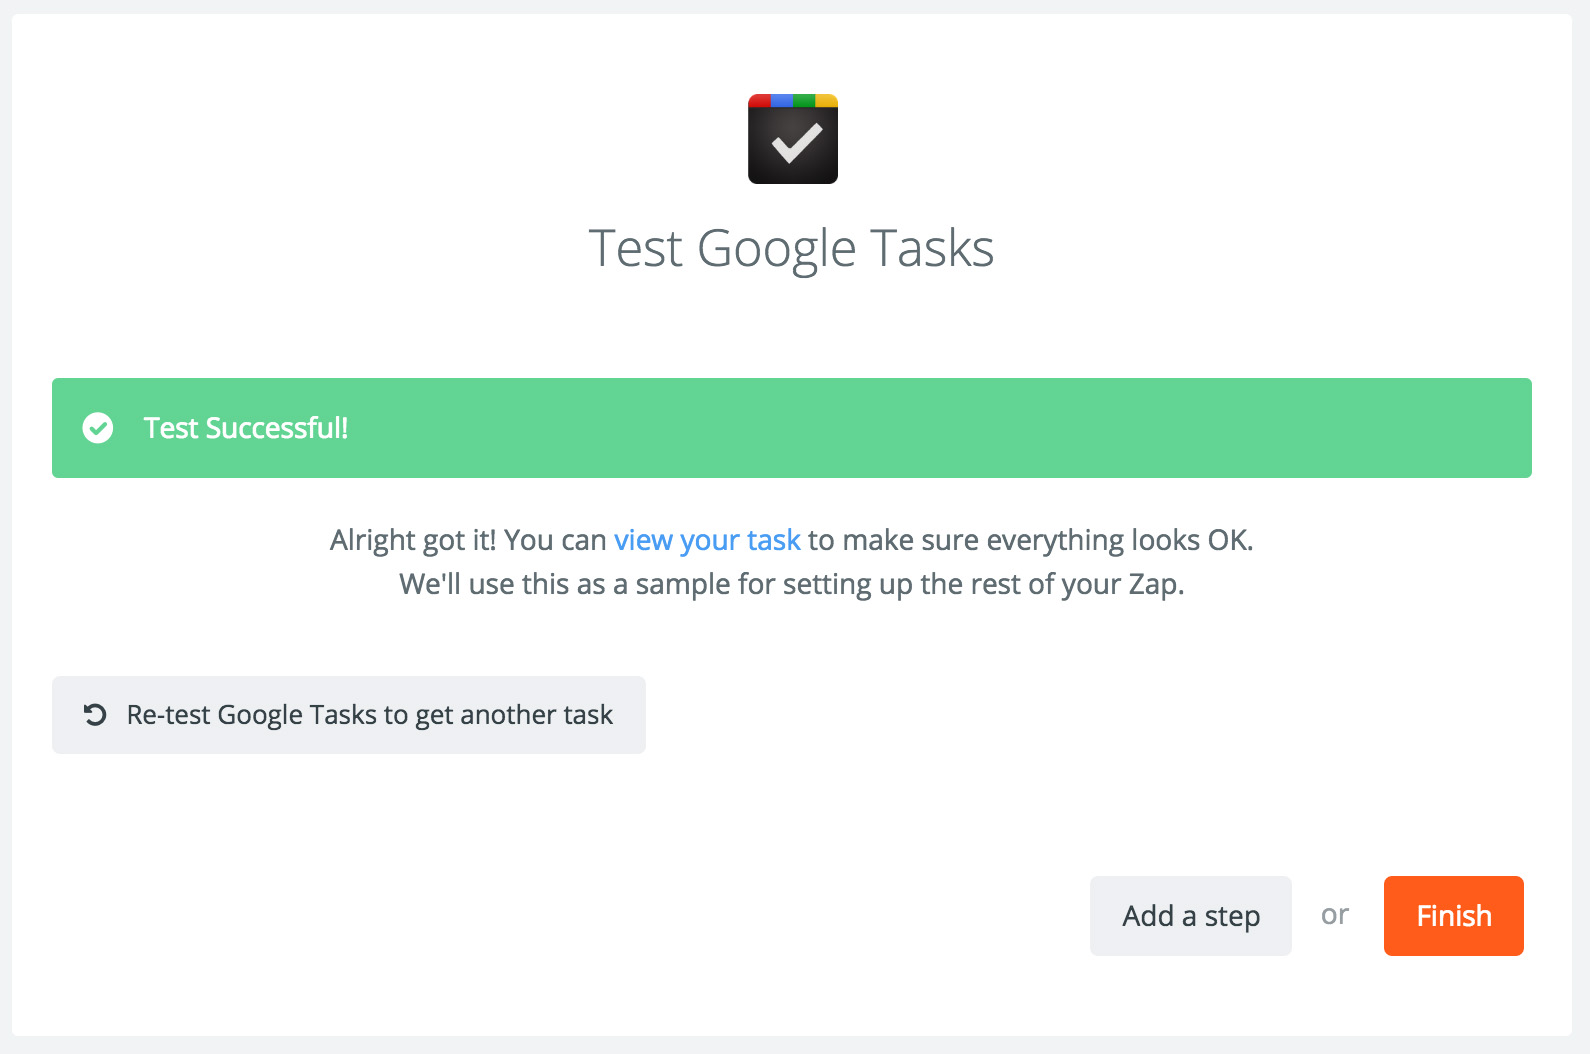 Finalizing the Google Tasks Integration